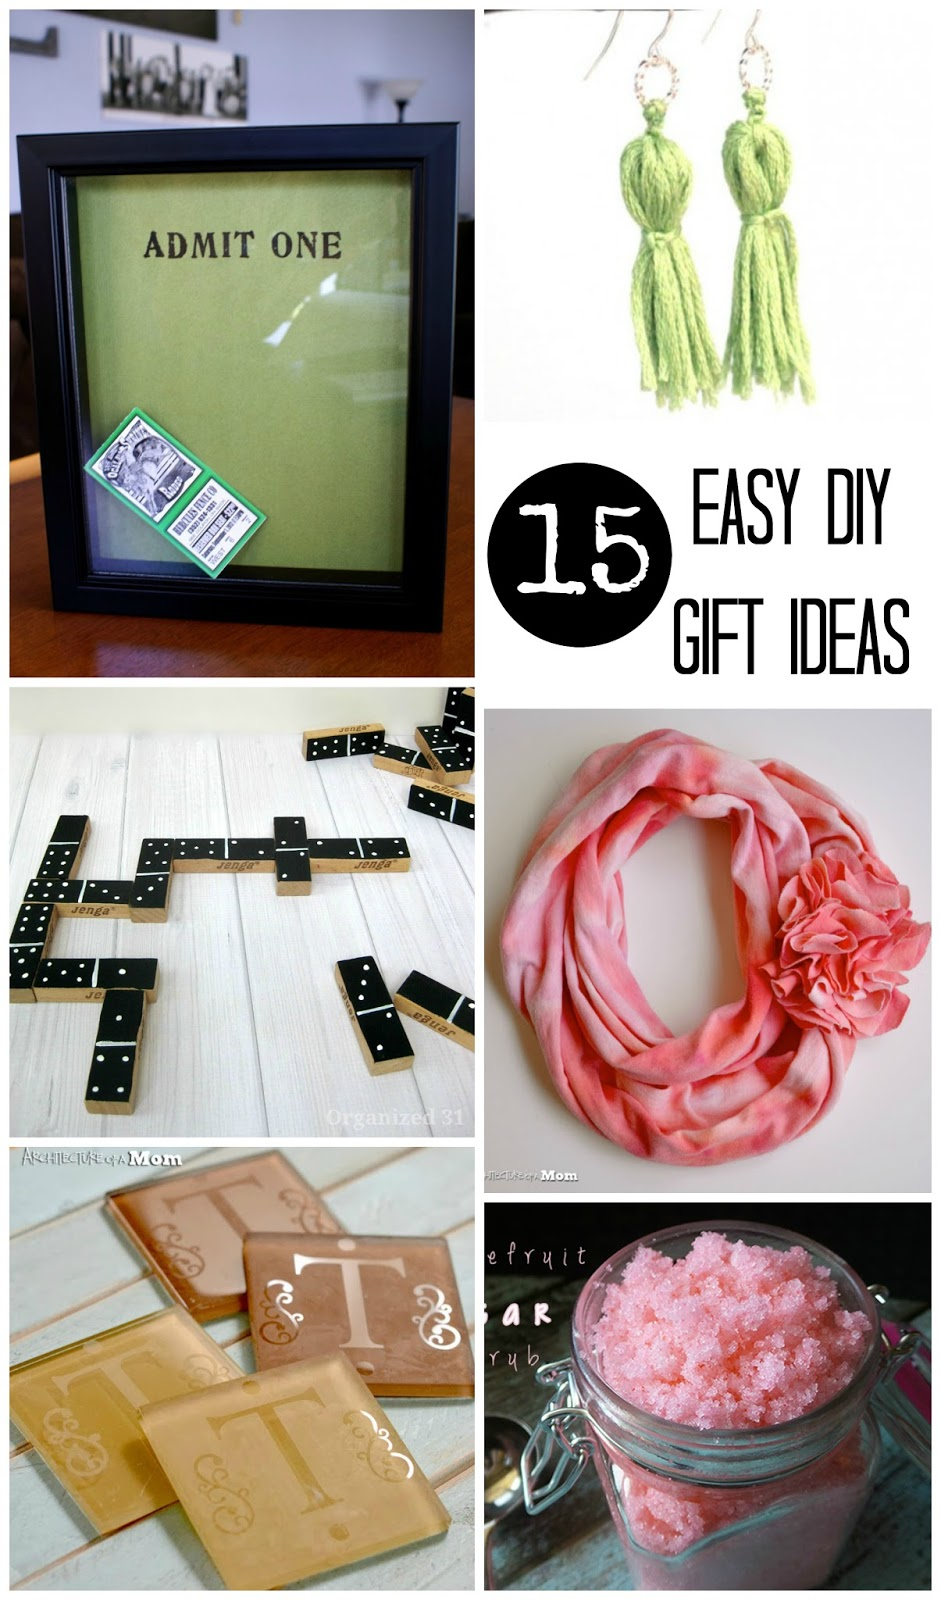 3 Easy Diy Storage Ideas For Small Kitchen: Architecture Of A Mom: 15 Easy DIY Gift Ideas